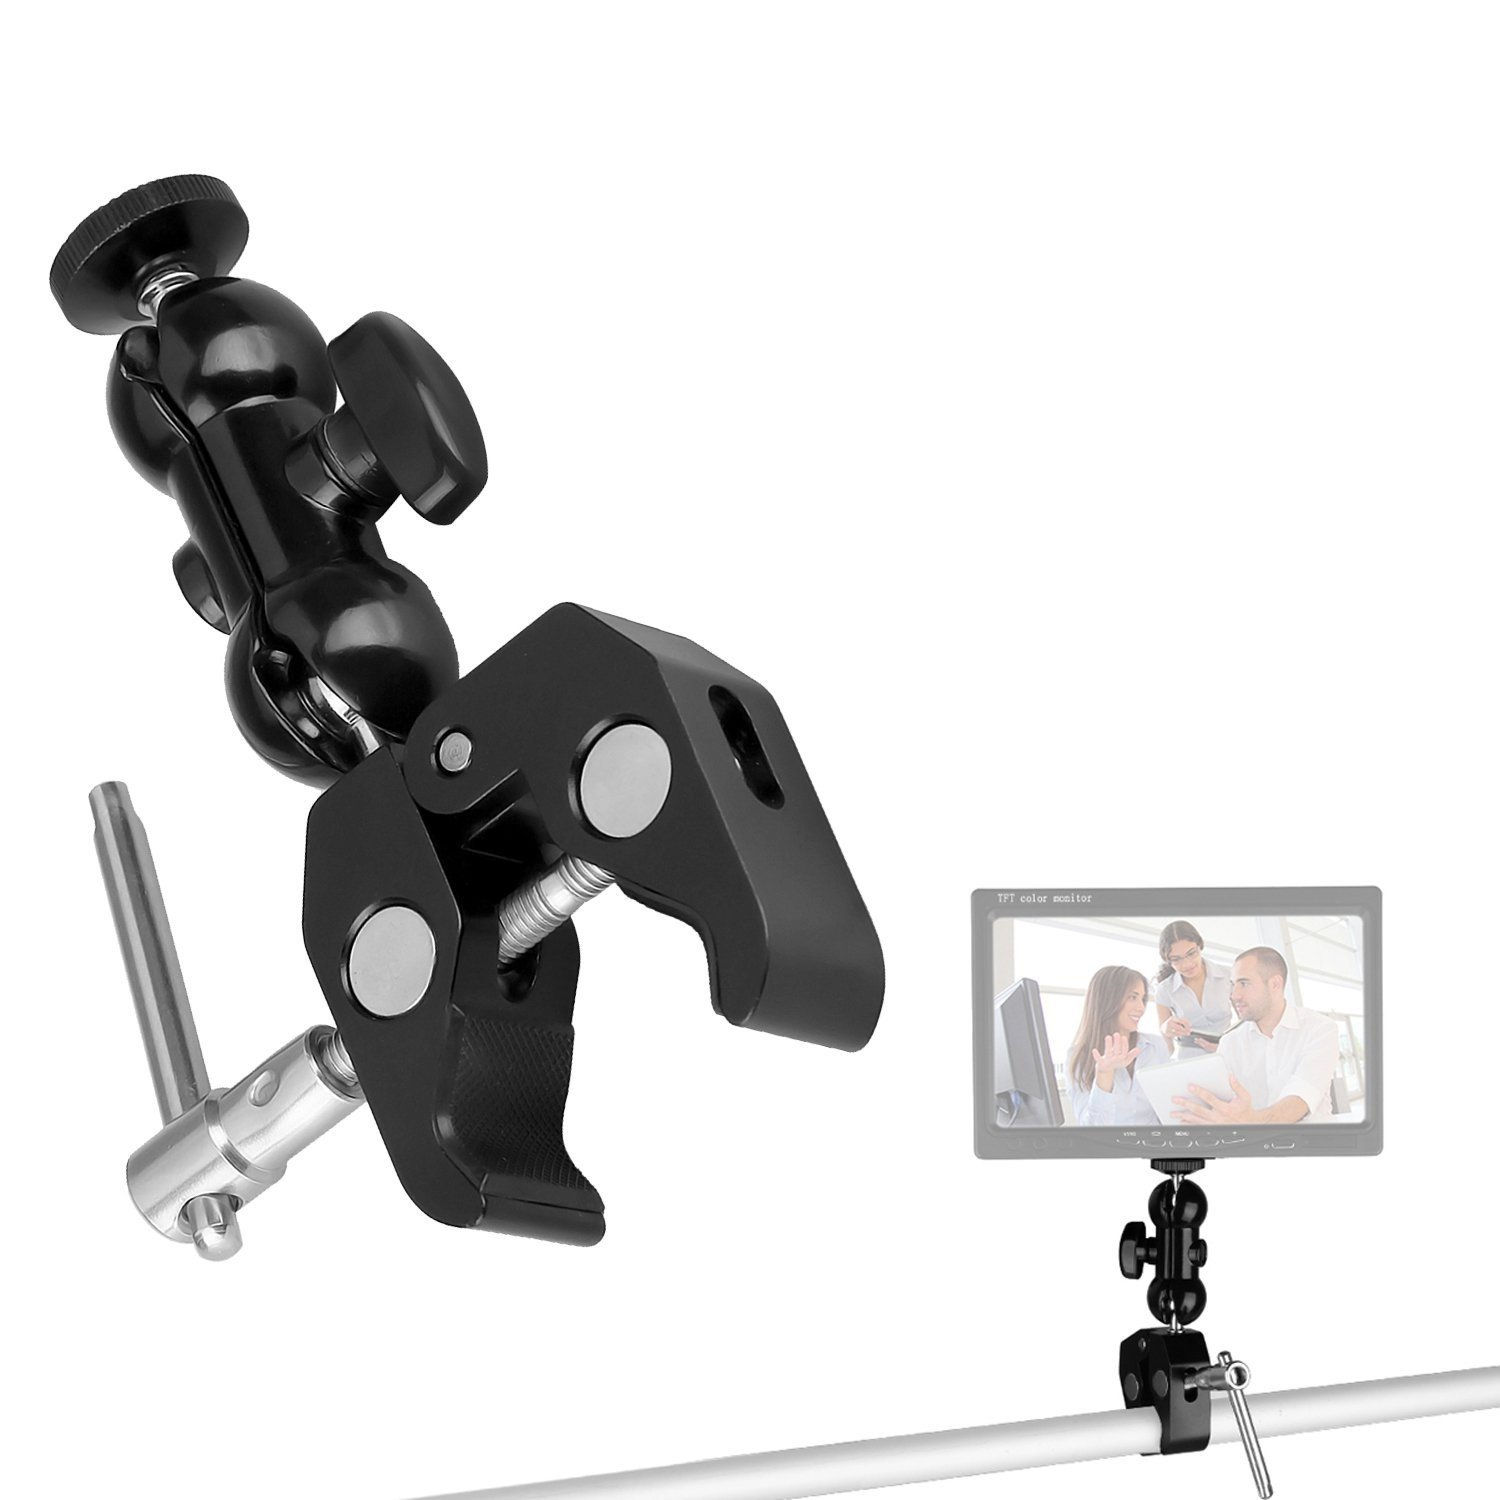 WAAO Magic Arm Cool Ballhead Arm Super Clamp Mount Multi-function Double Ball Adapter with Bottom Clamp for DSLR Camera Rig, LED Lights, Flash Lights, LCD Monitor